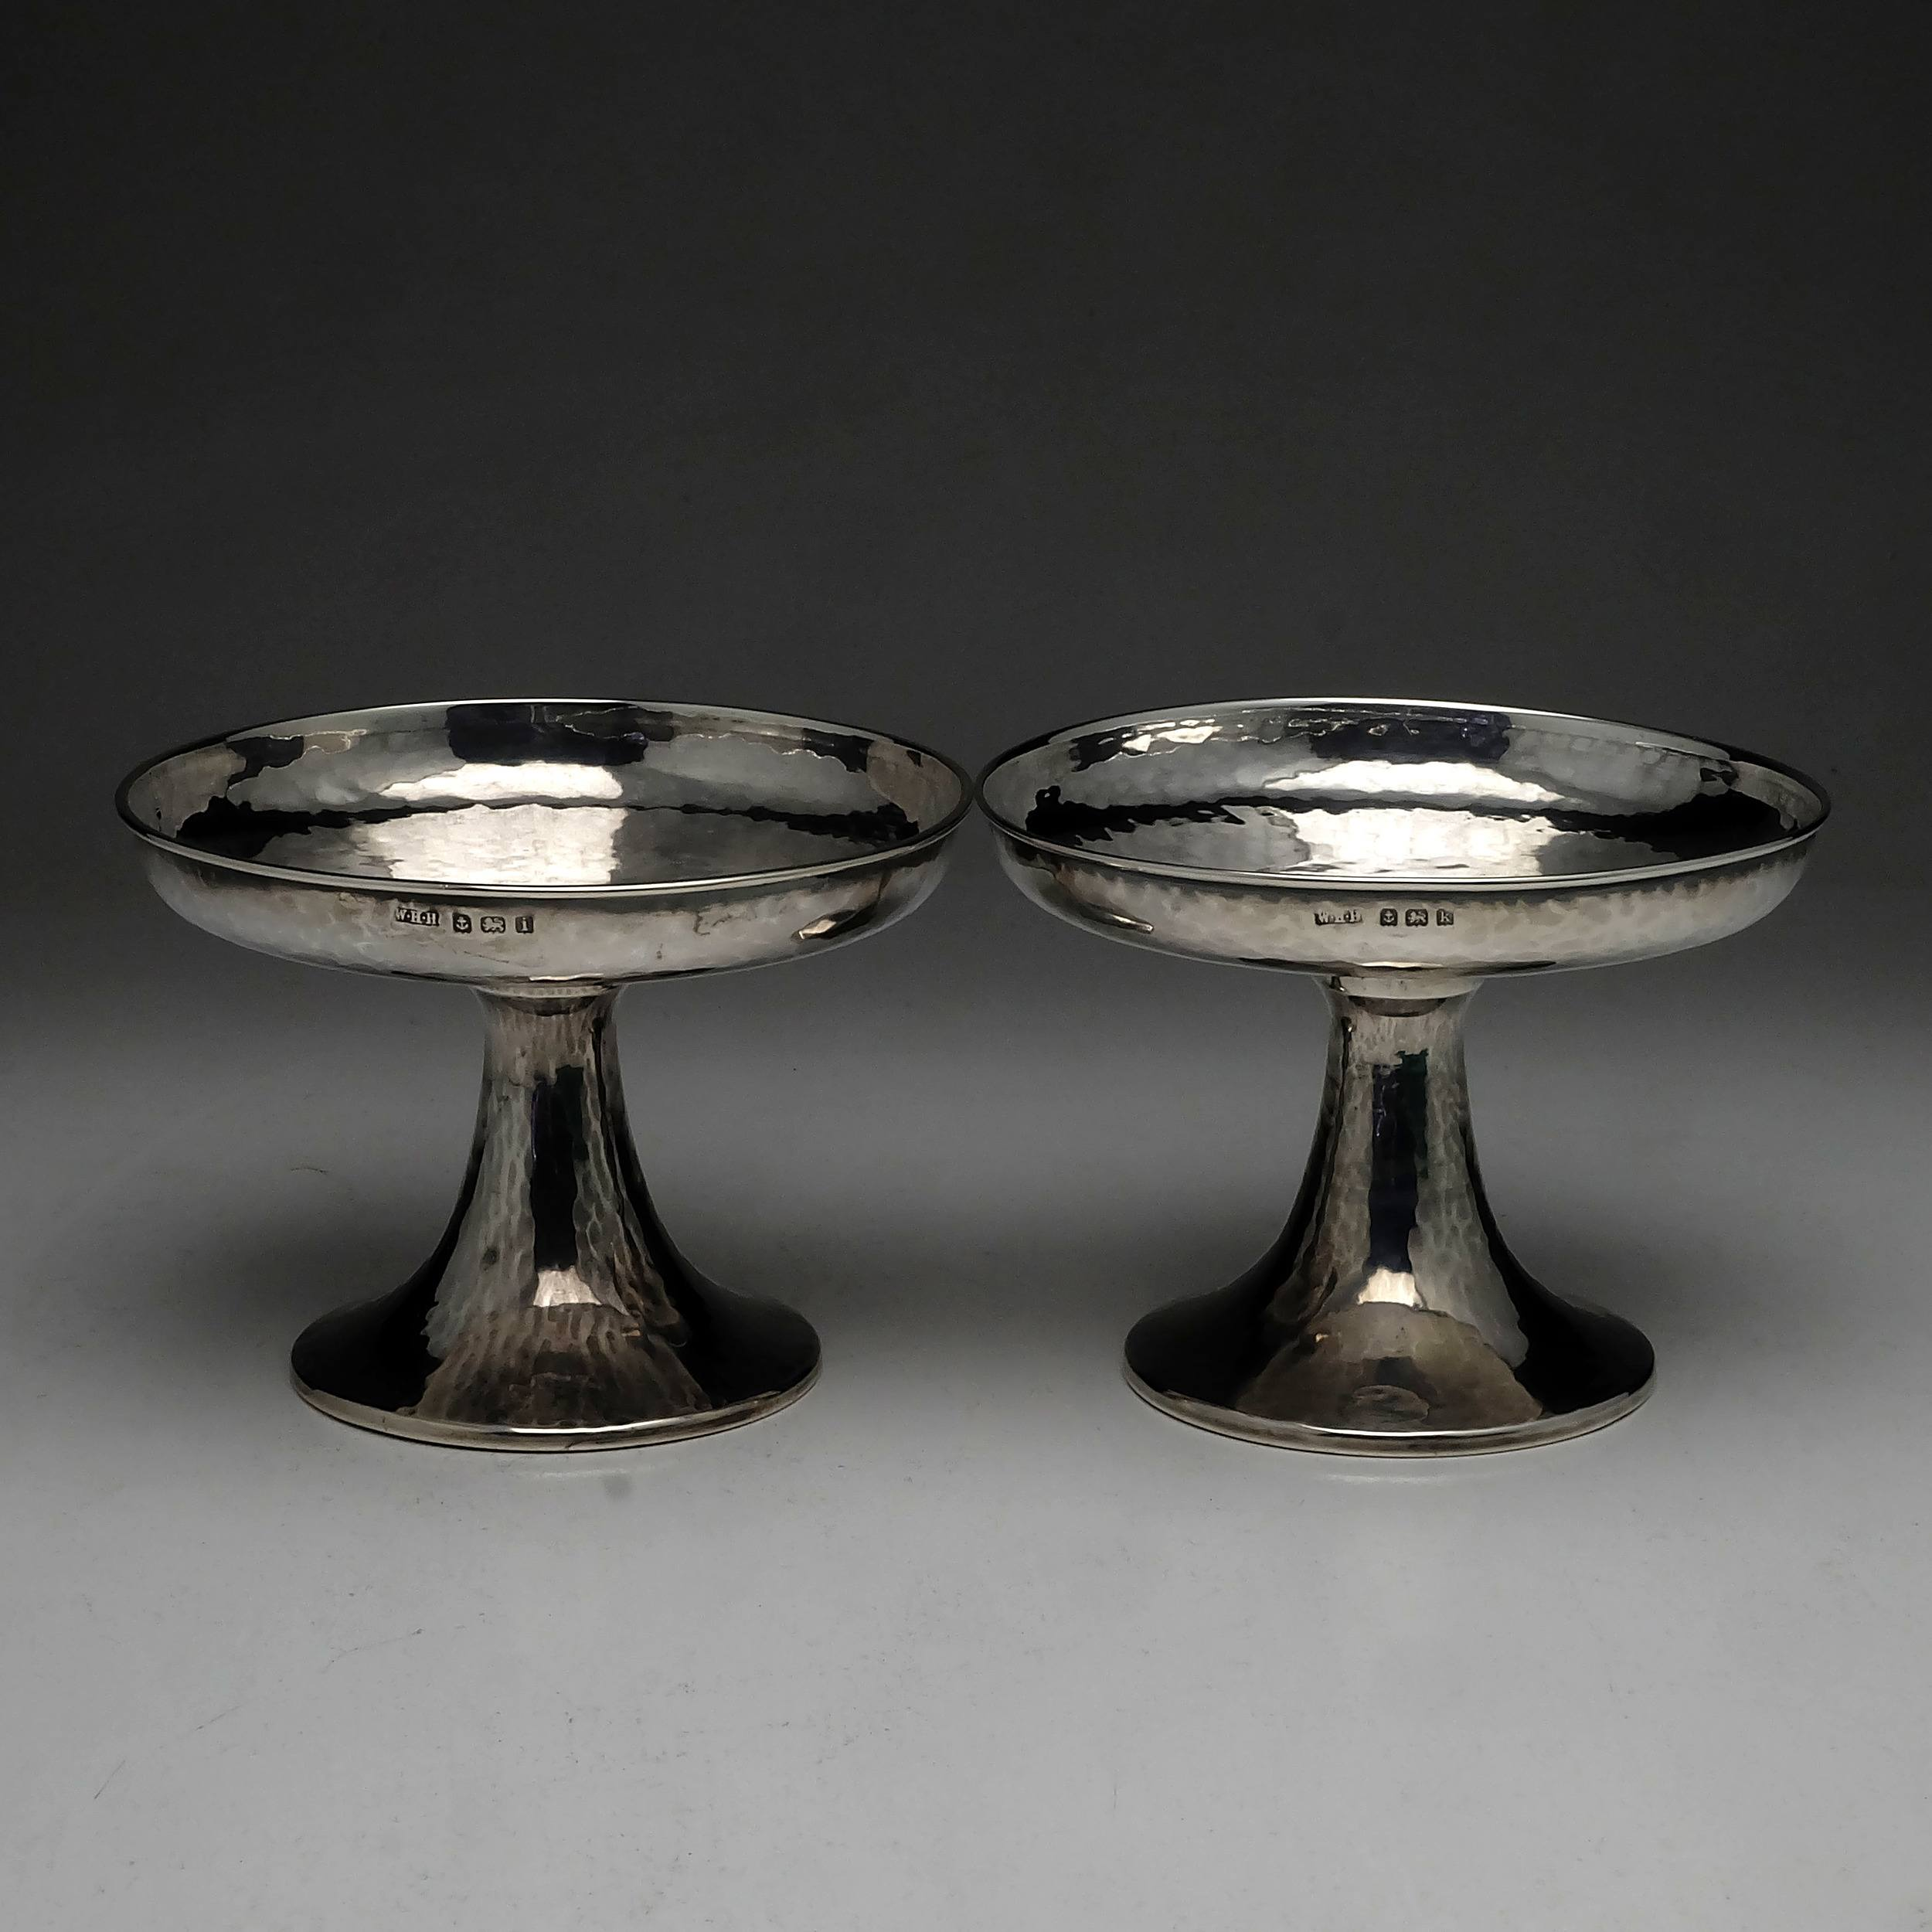 'Pair Arts and Crafts Sterling Silver Planished Compotes Birmingham William Hair Haseler 1908 1909 165g'